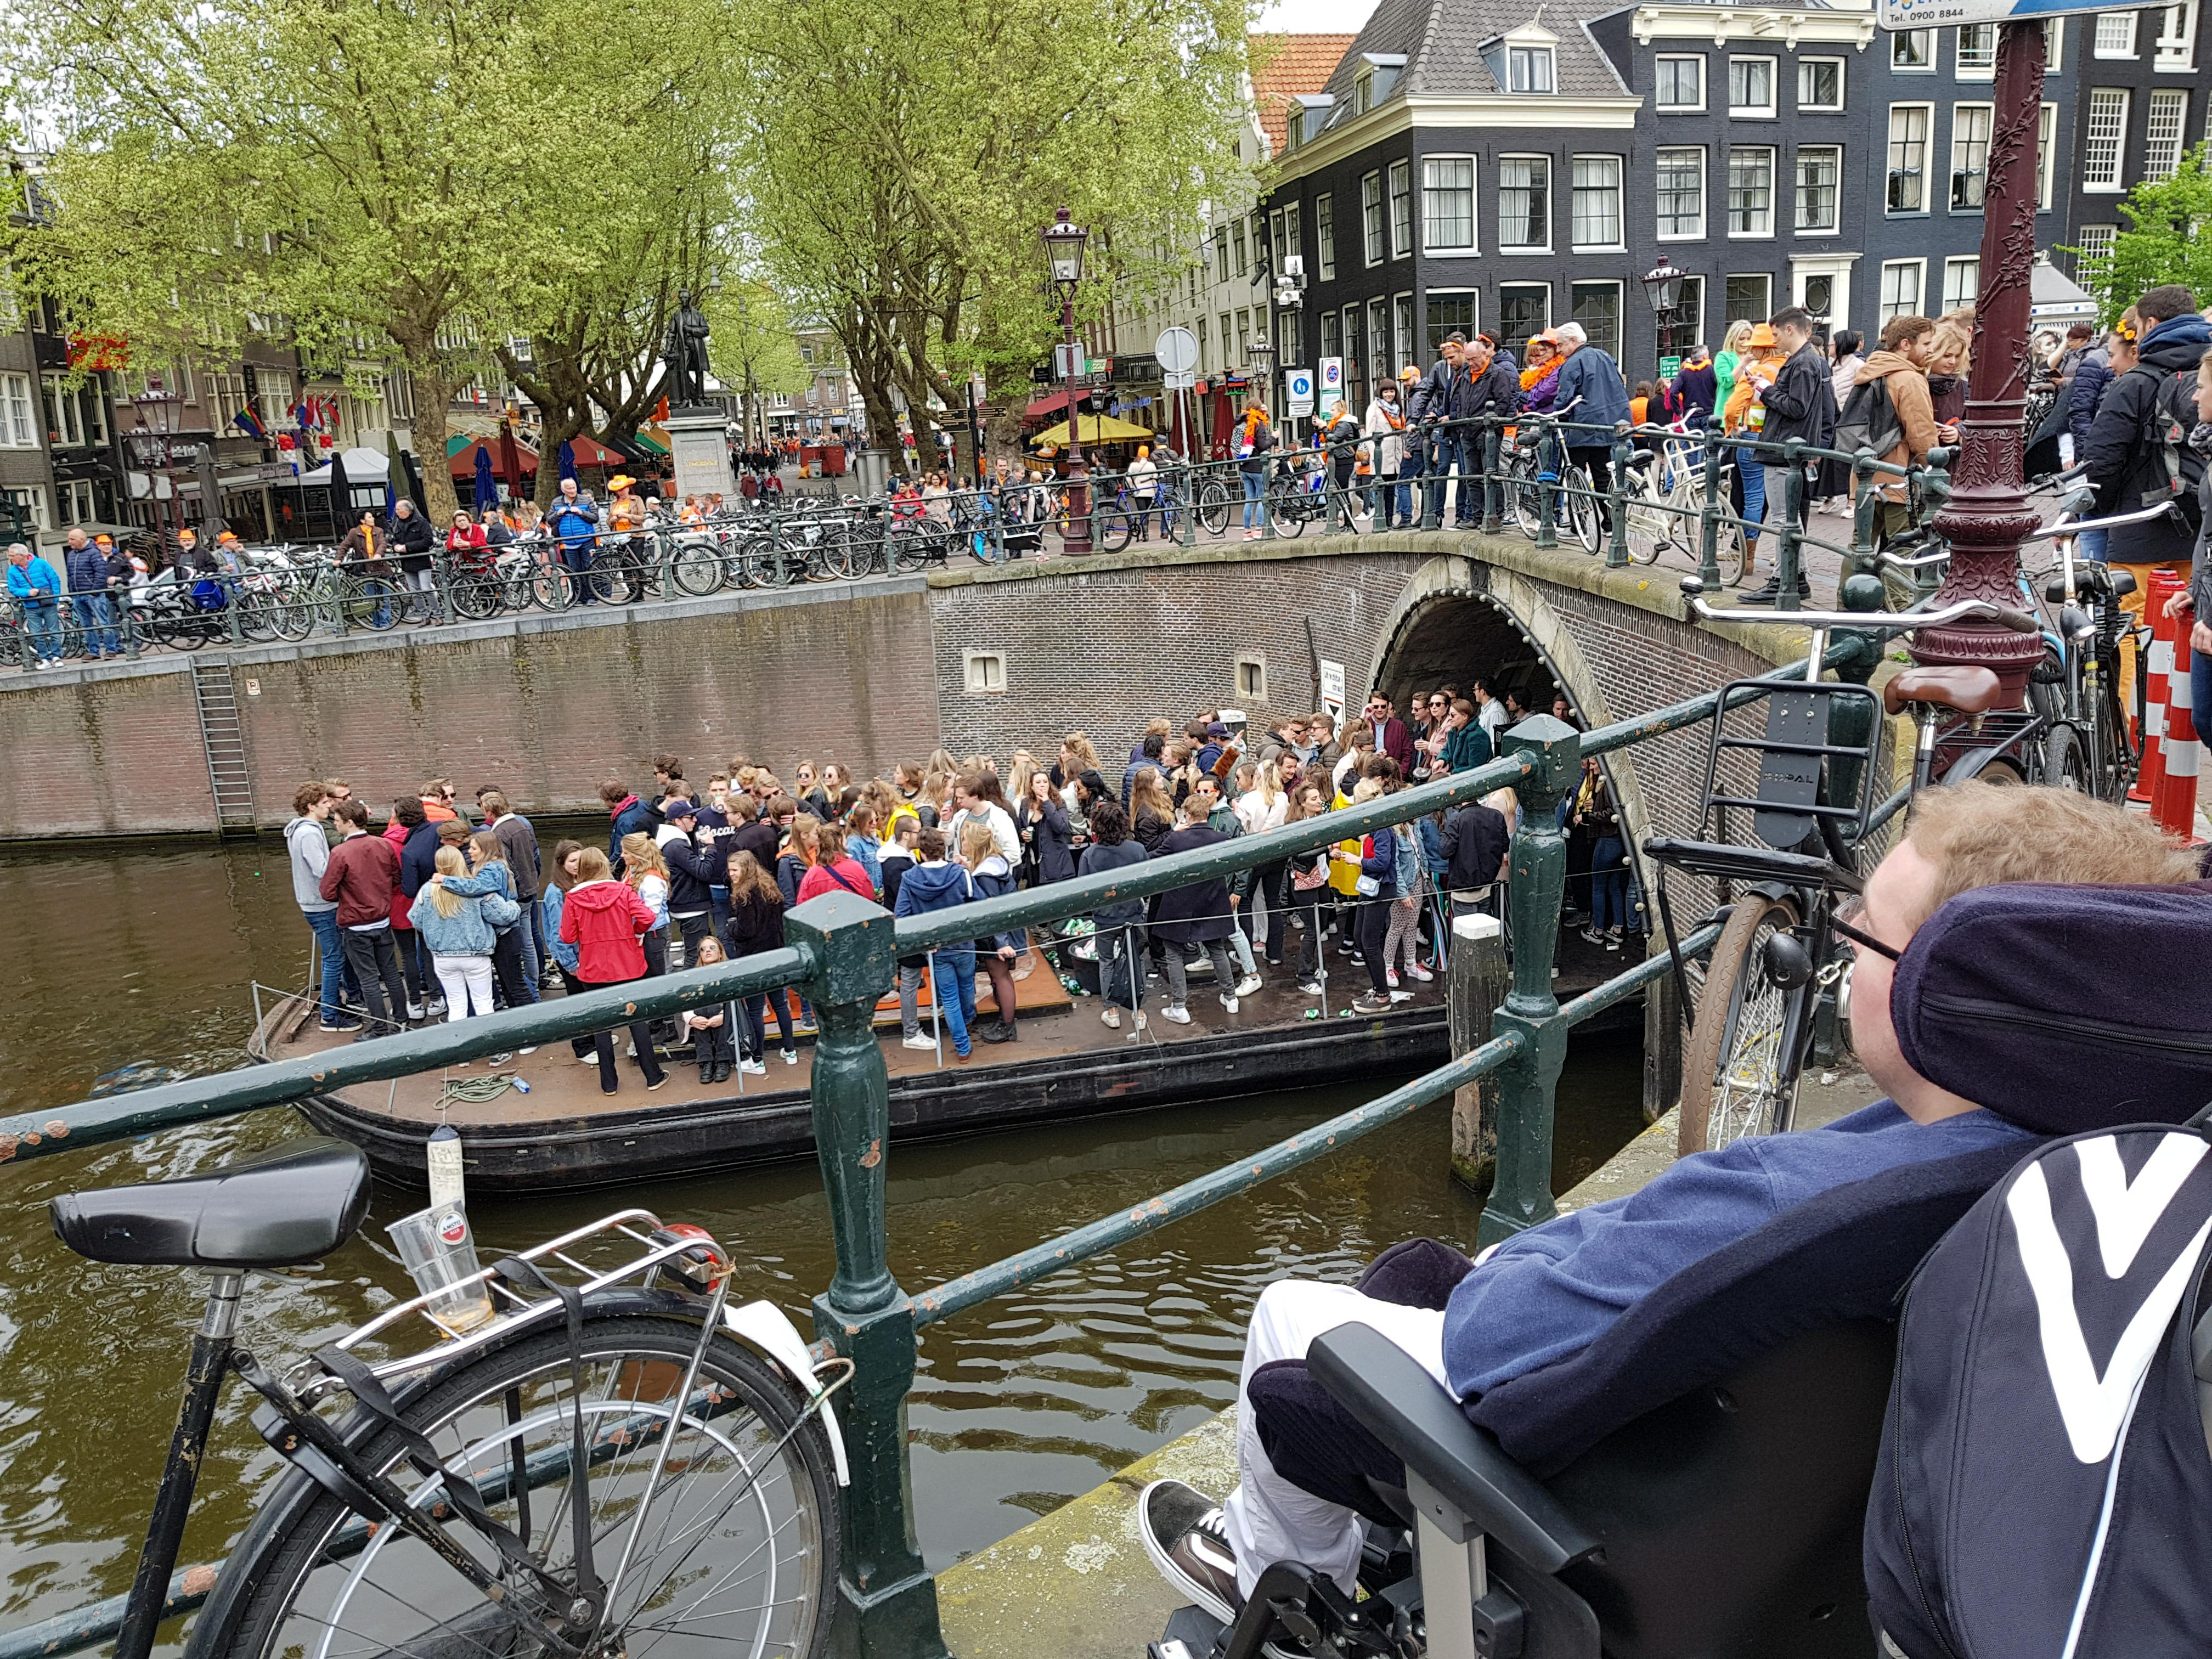 A boat on one of Amsterdam's canals filled with people partying